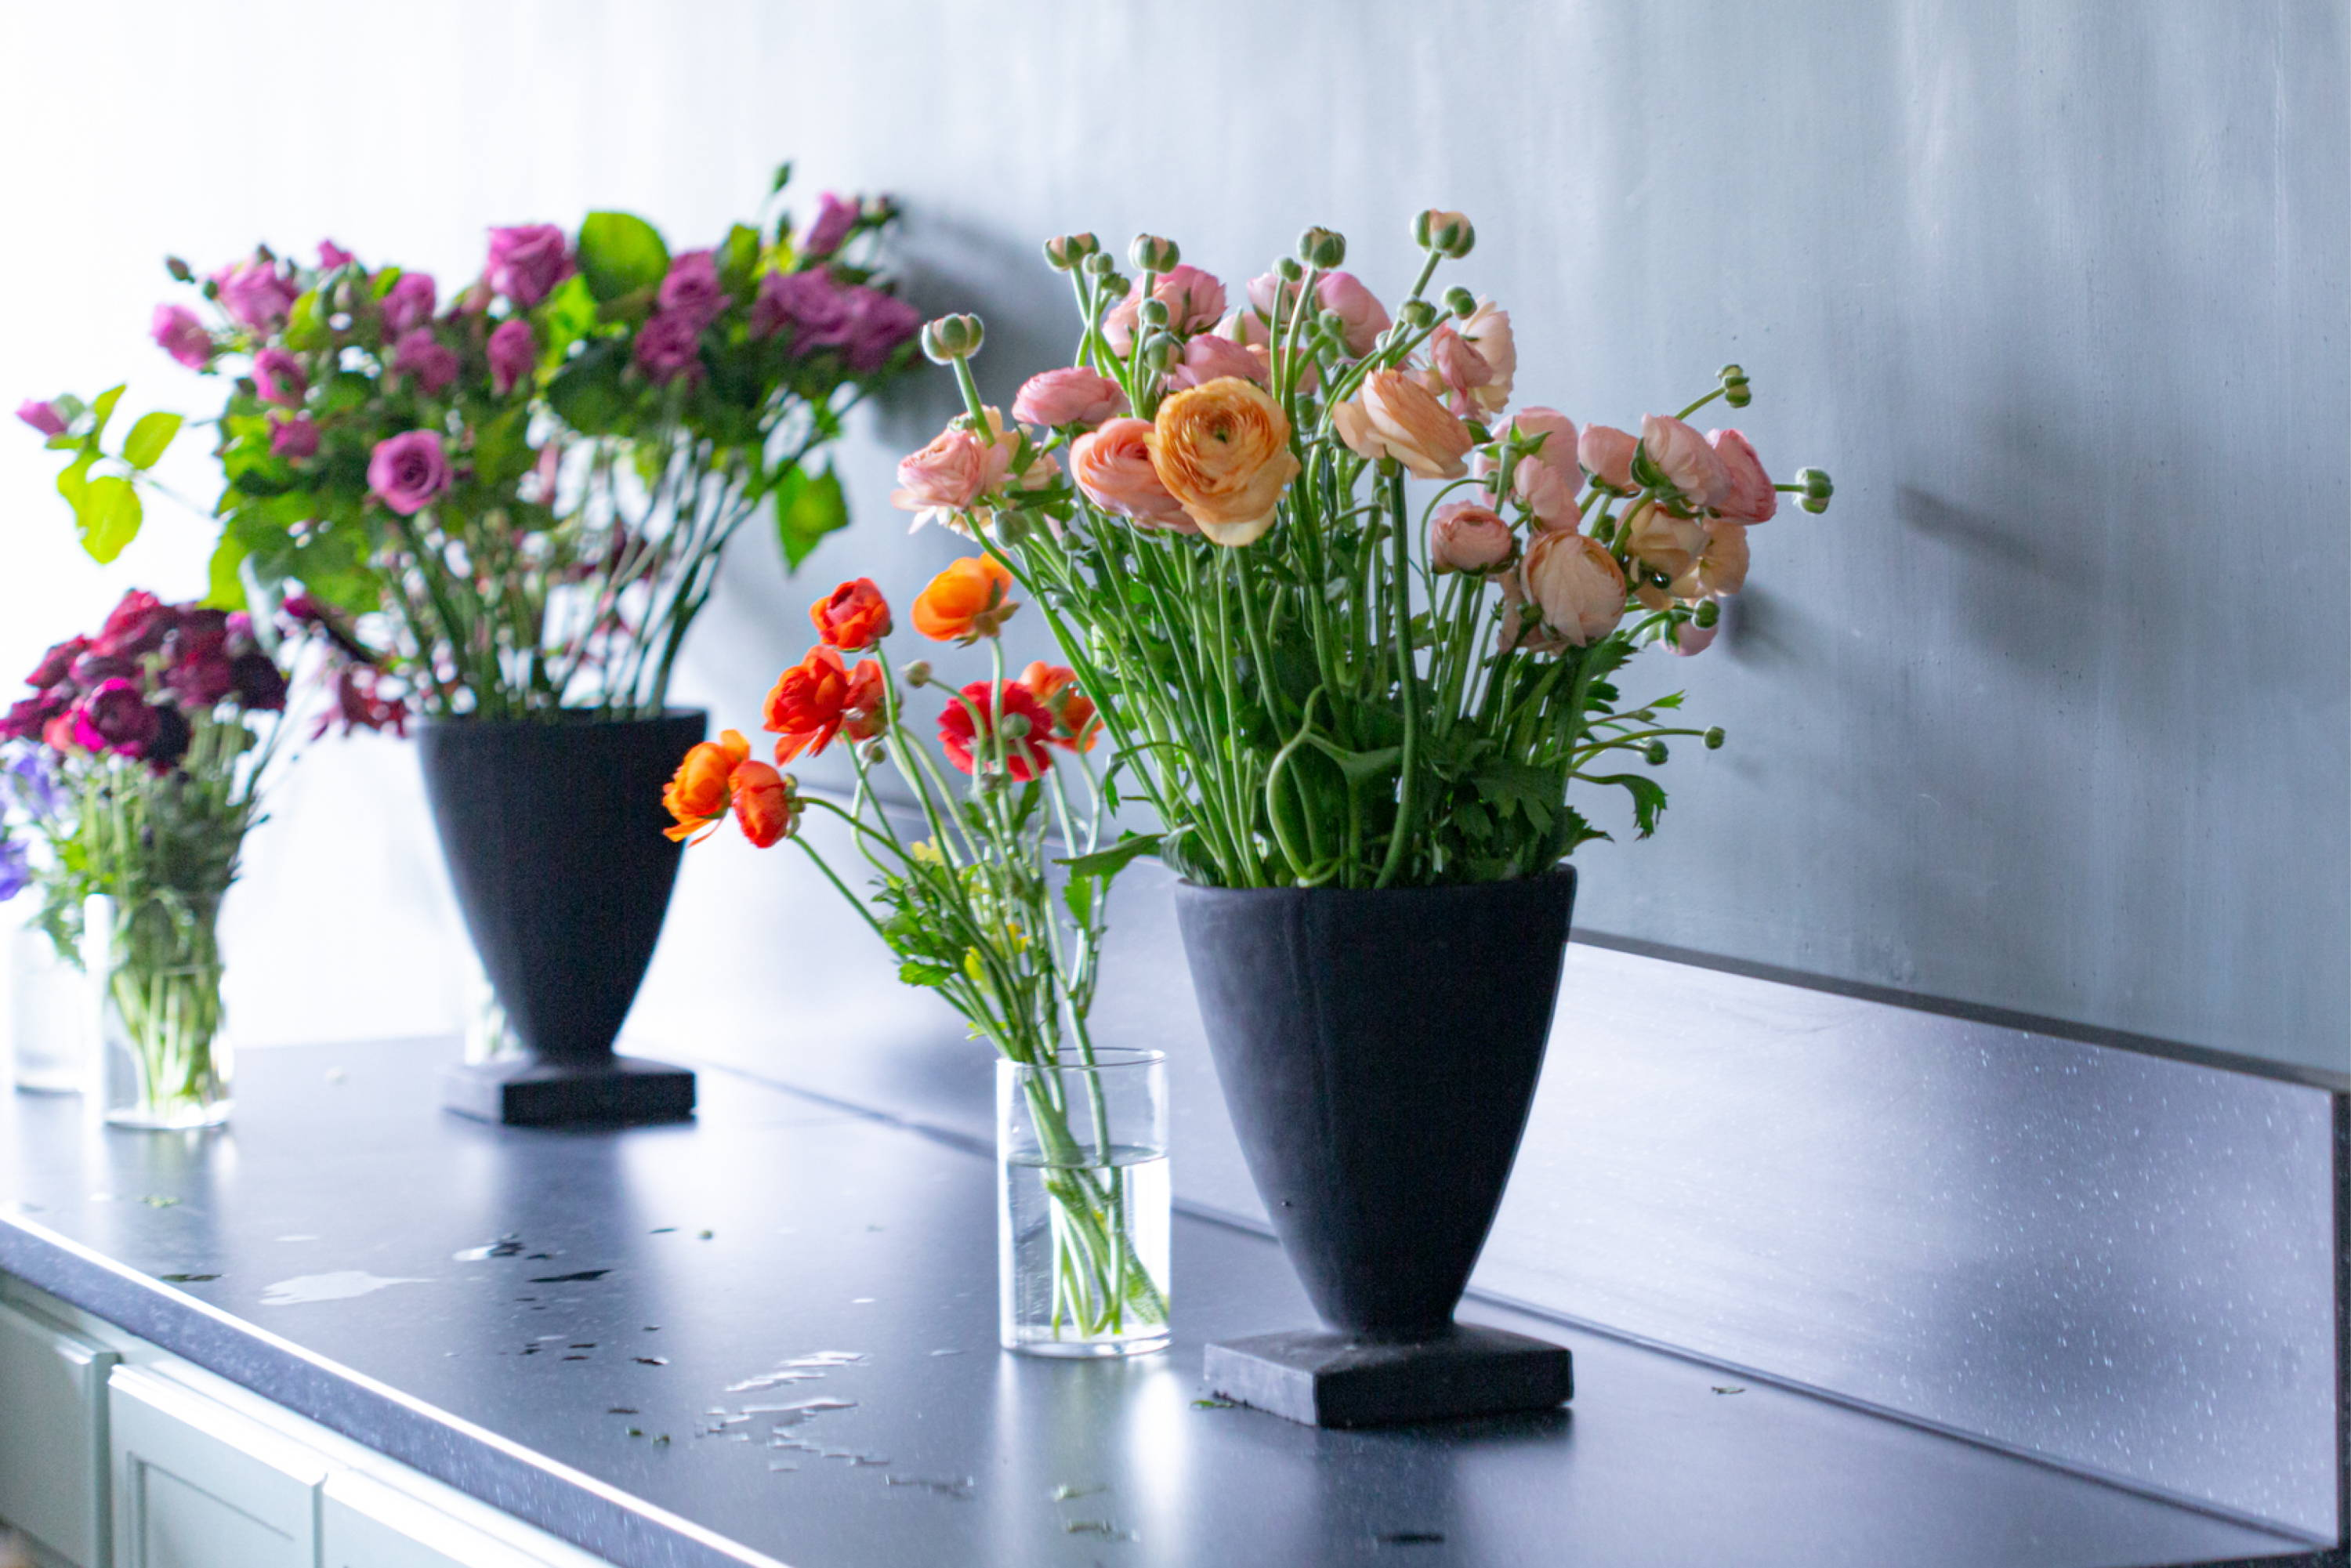 Image of floral arrangements in decorative vases on a dark countertop